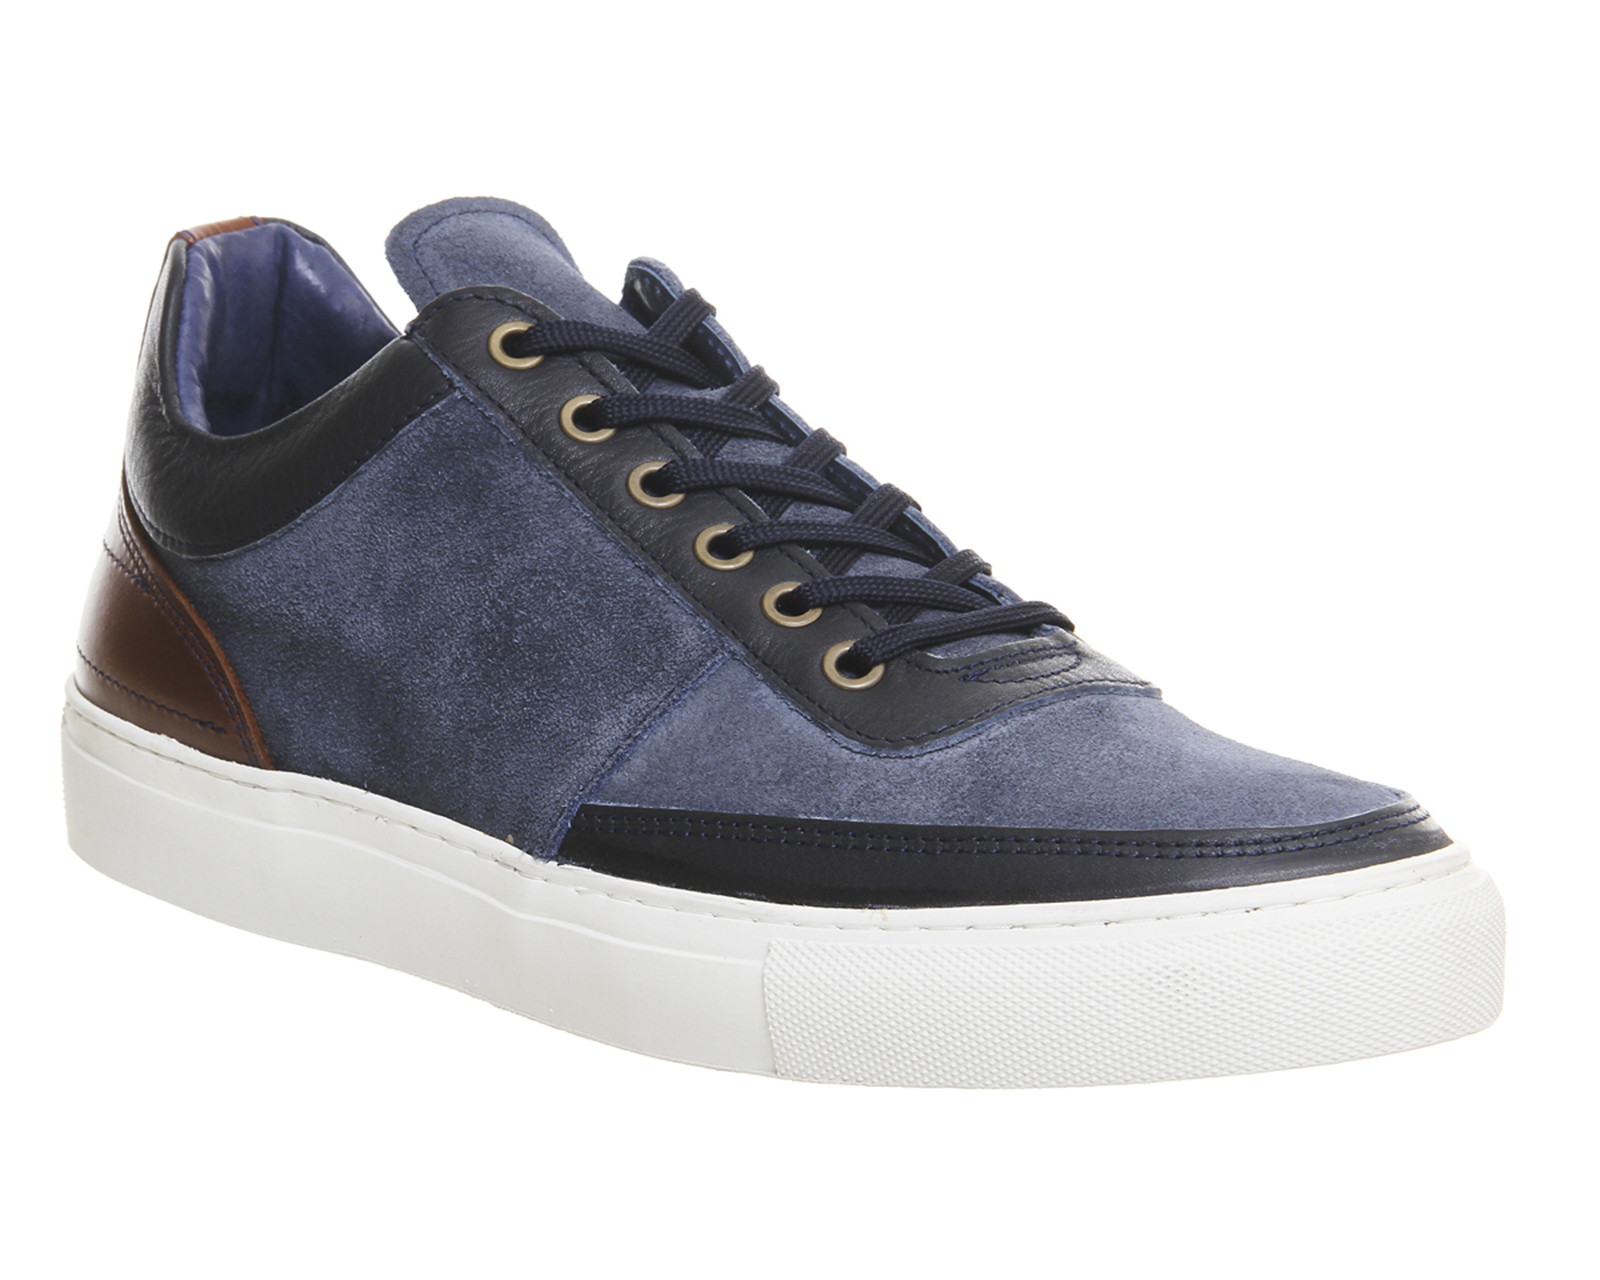 Mens Ask the Missus Creature Sneaker NAVY NUBUCK Casual ...